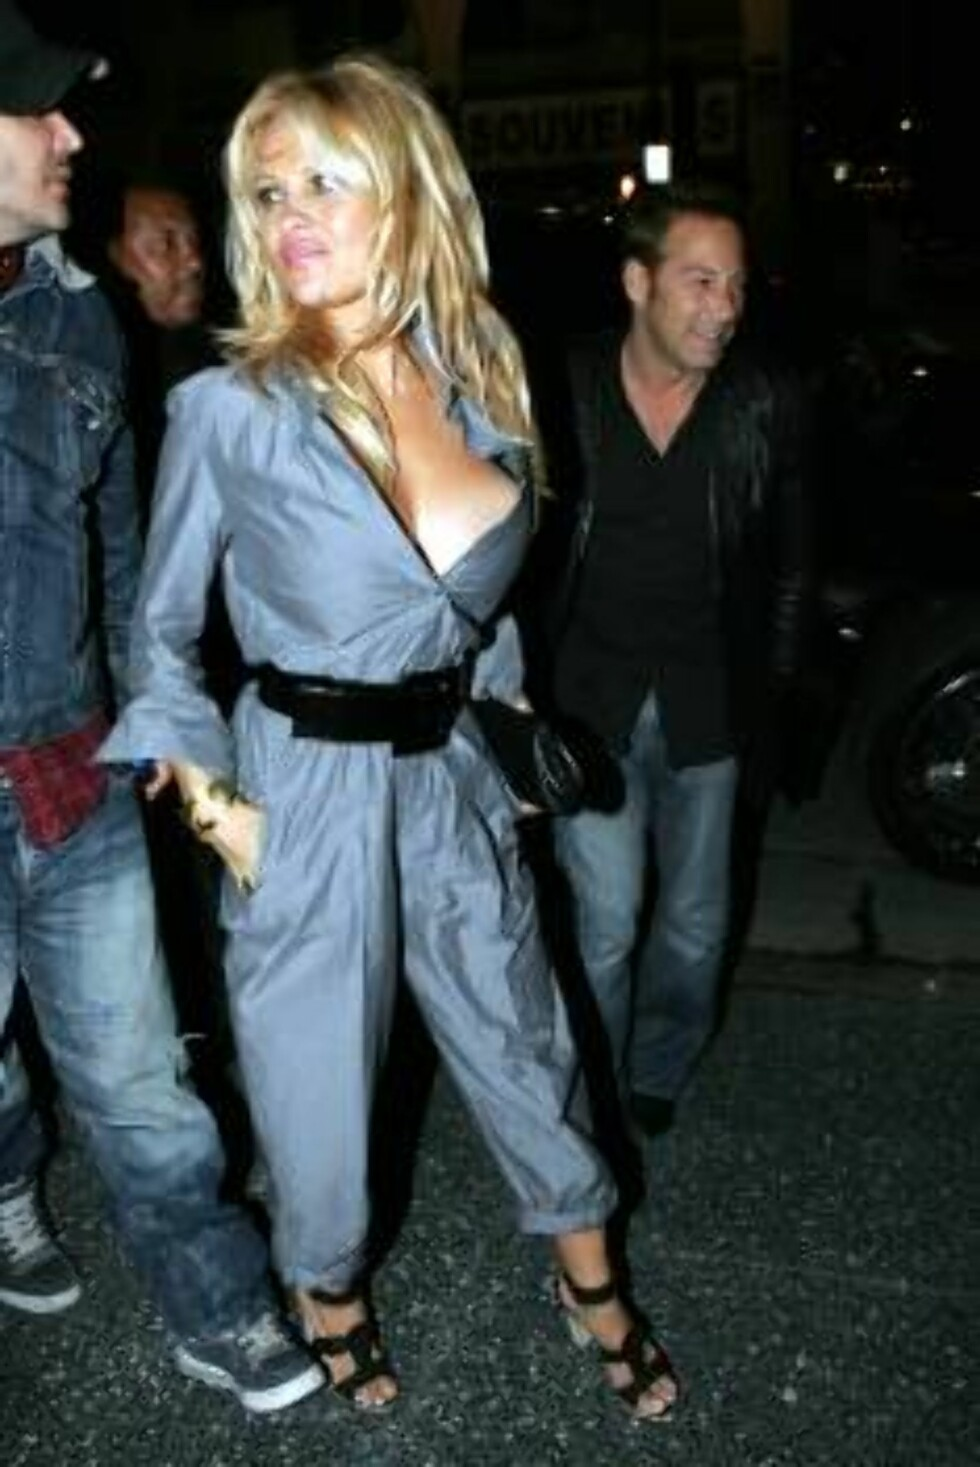 Pamela Anderson arriving at the Roosevelt hotel in Hollywood. March 2, 2006 X17agency exclusive / ALL OVER PRESS Foto: All Over Press